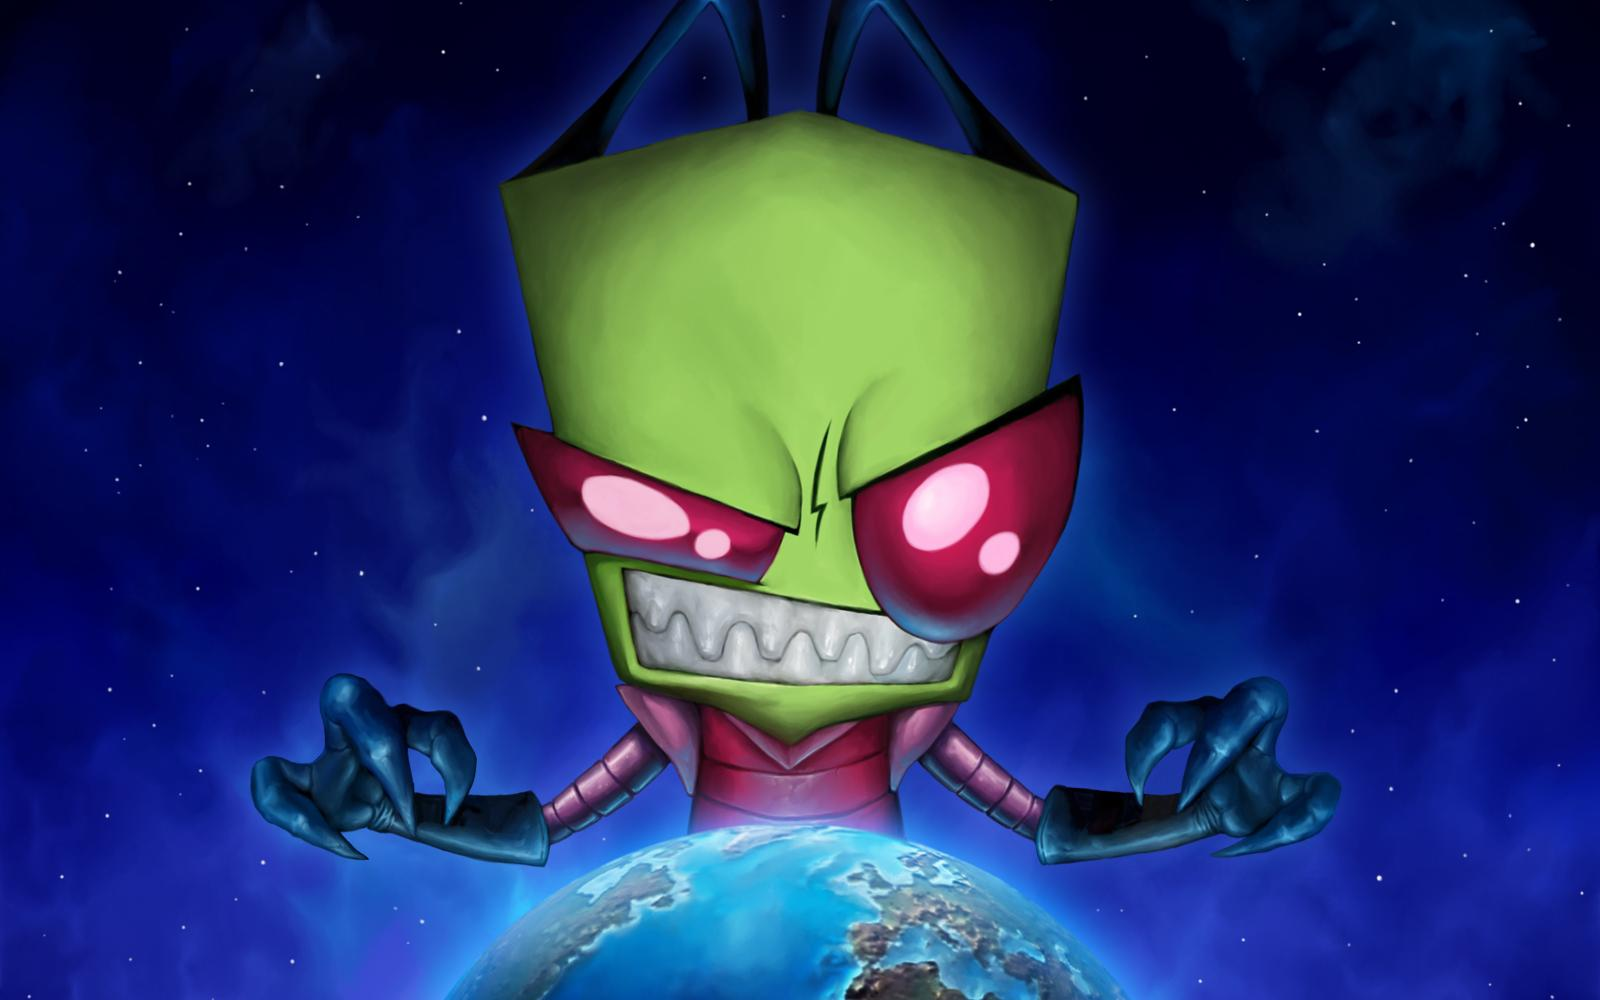 Invader Zim Iphone Wallpaper Invader Zim Wallpapers Wallpaper Cave